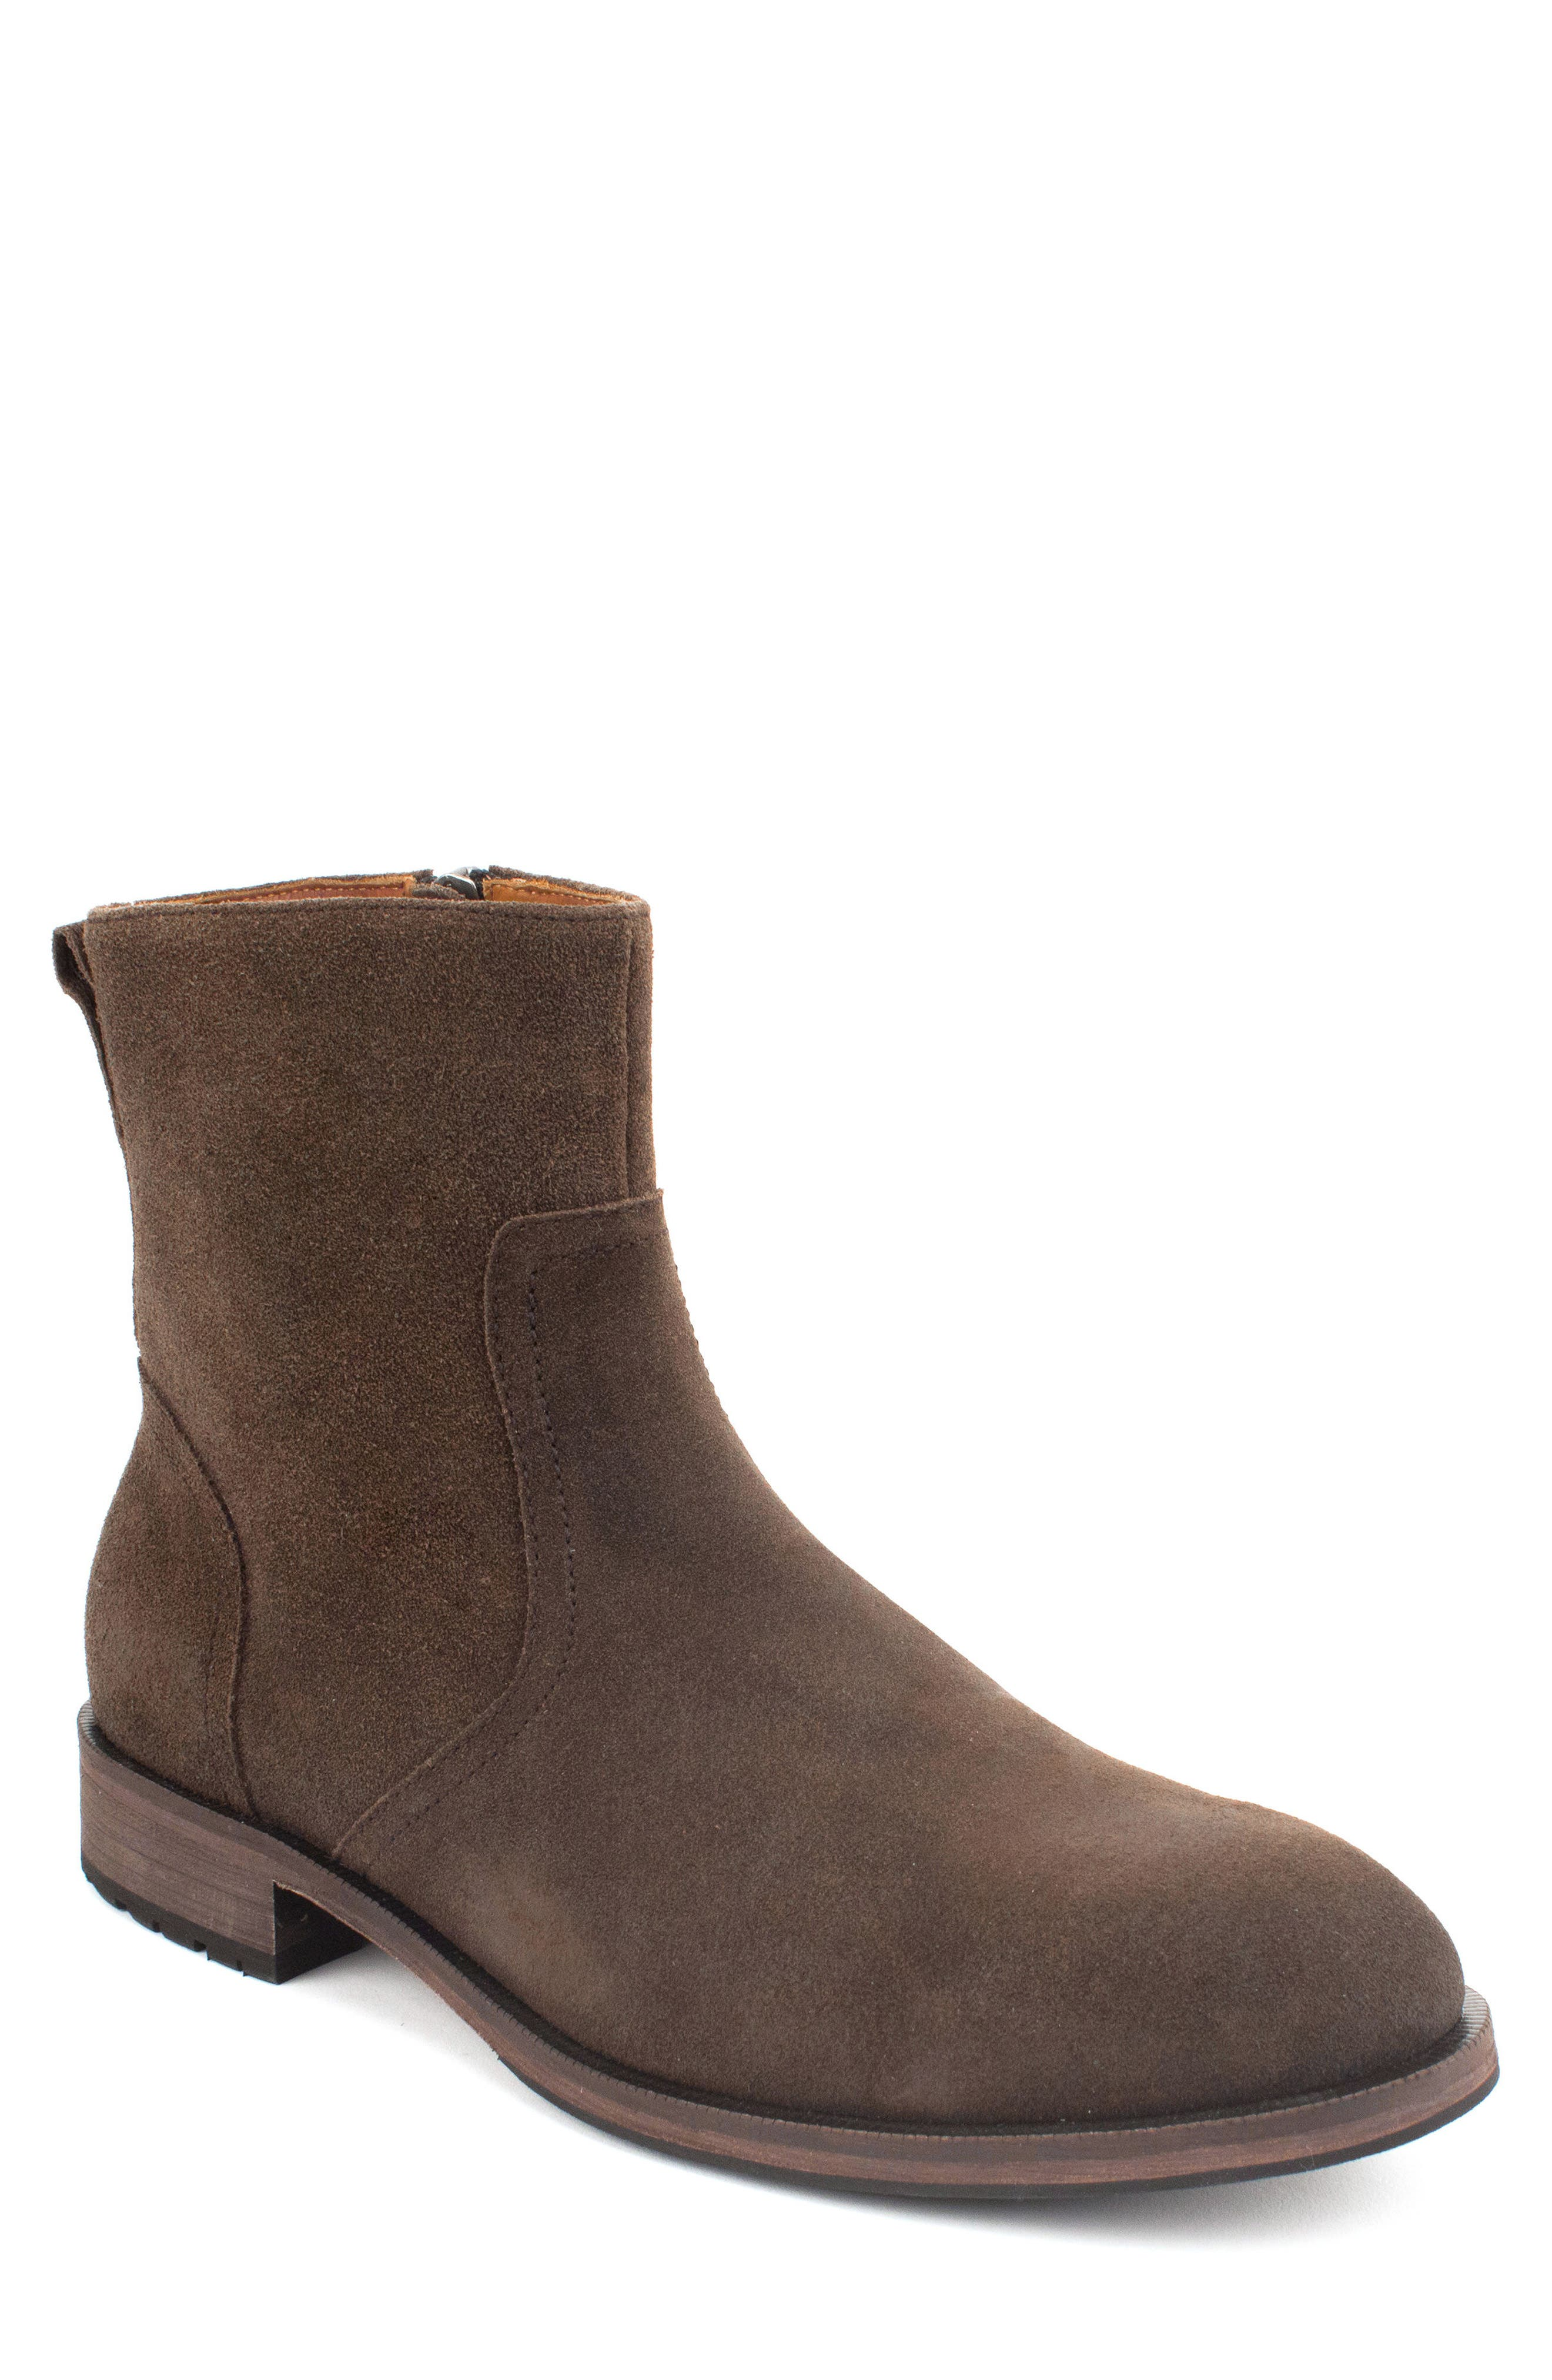 Fayette Plain Toe Zip Boot,                         Main,                         color, CHOCOLATE SUEDE